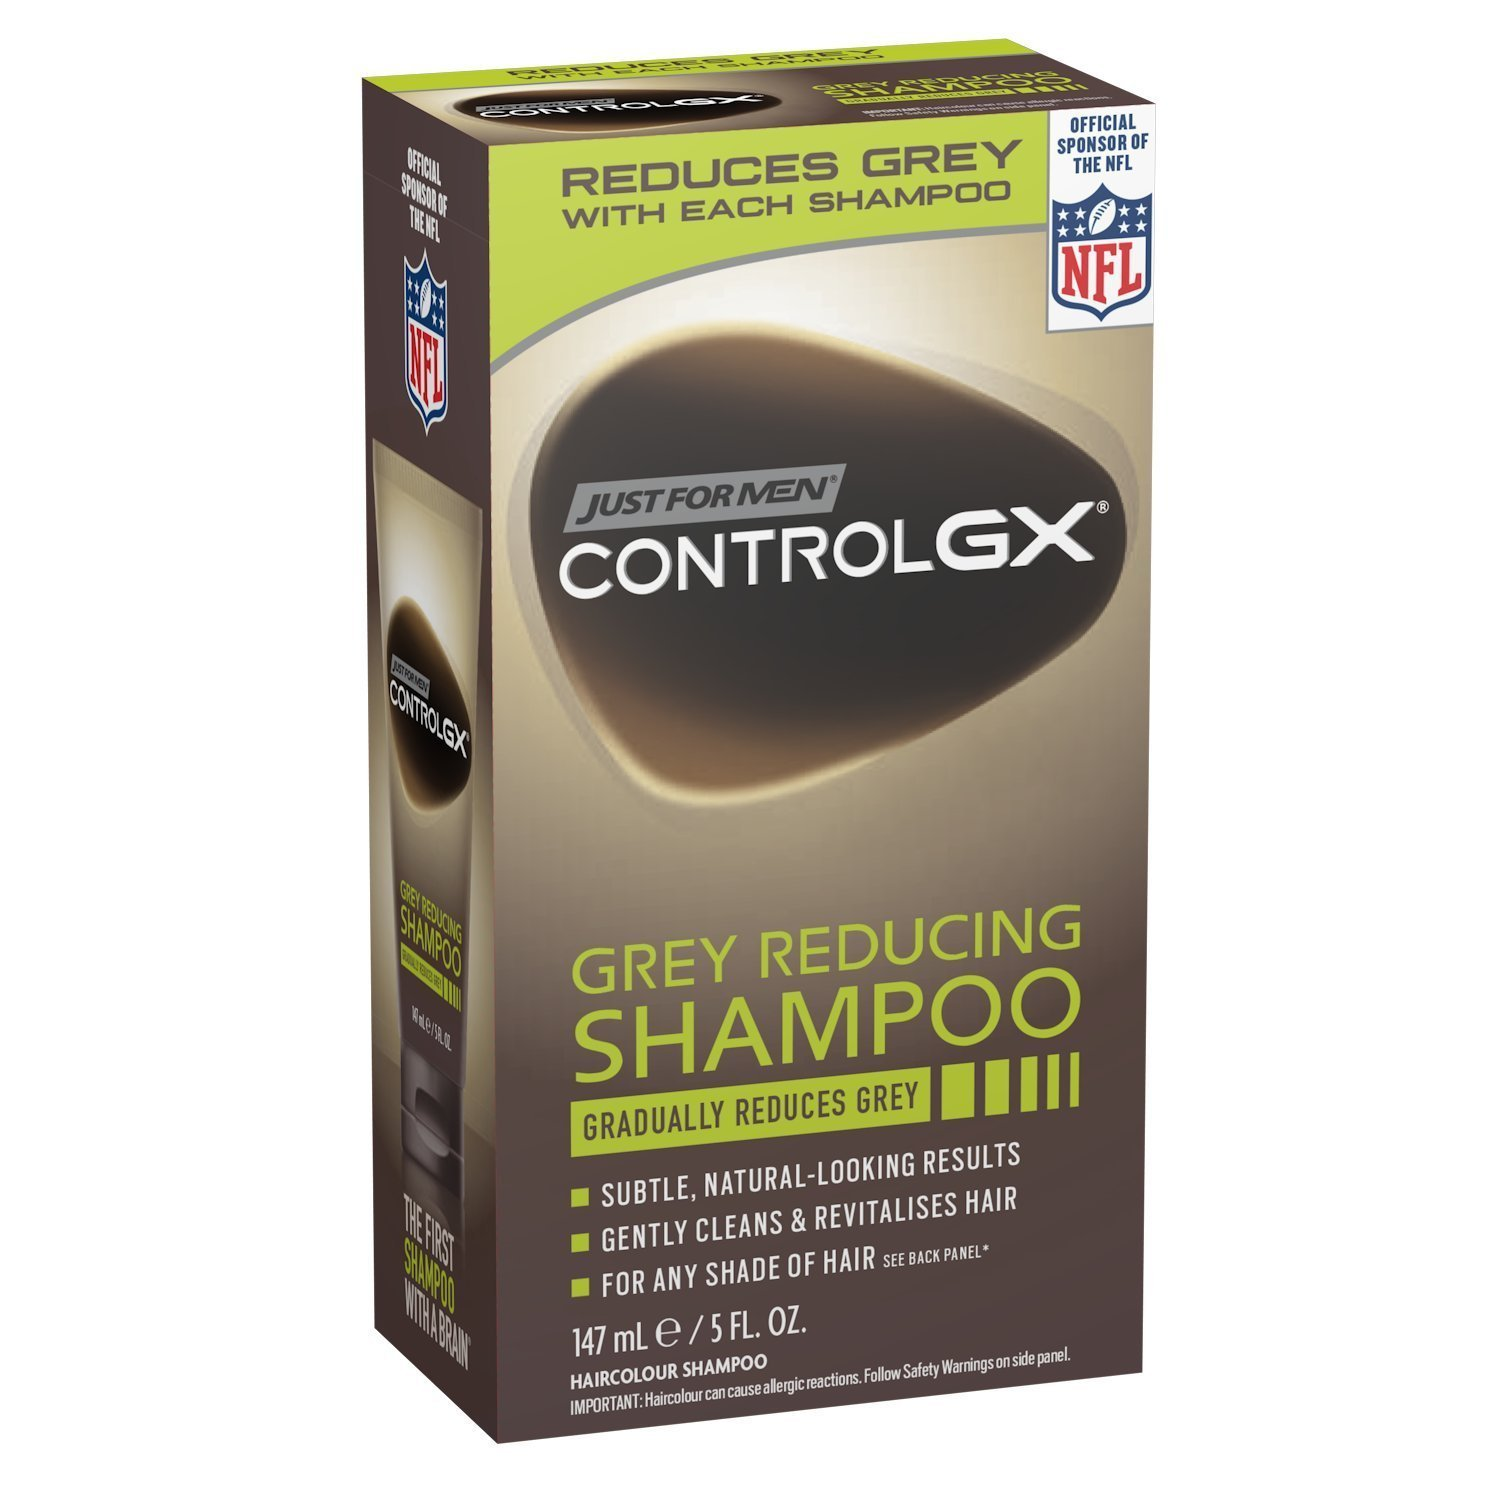 Just For Men Control Gx 5 Ounce Shampoo Grey Reducing Boxed (147ml) (6 Pack) by Just for Men